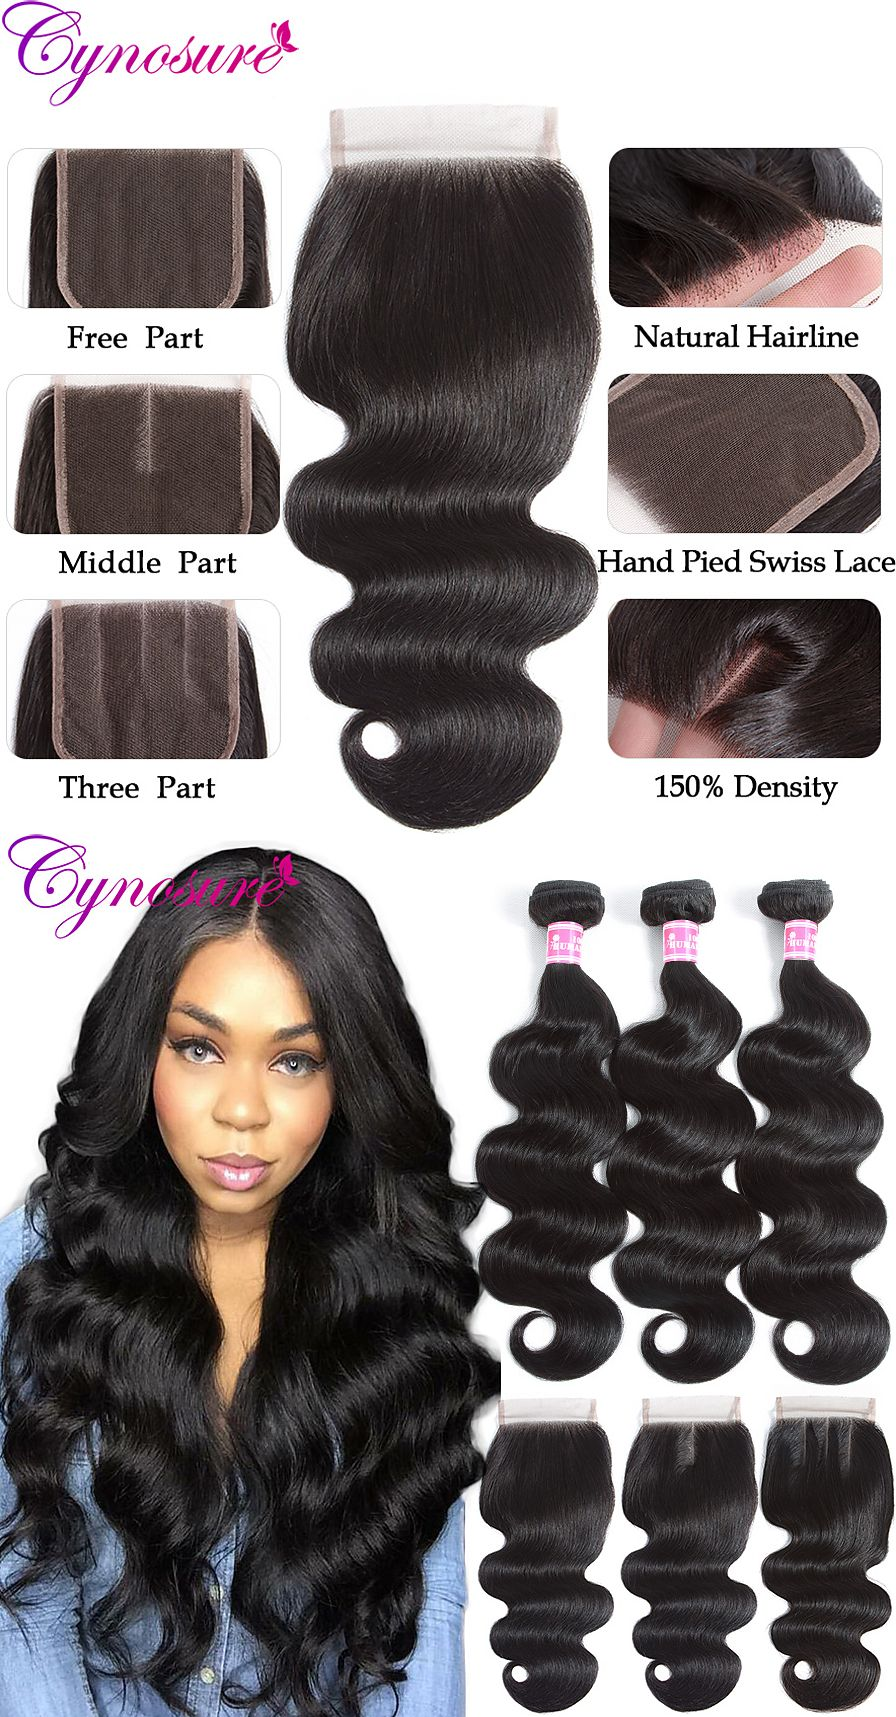 Womens wigs body wave. Consistently I try to bring you the very best deals  to f7f907824